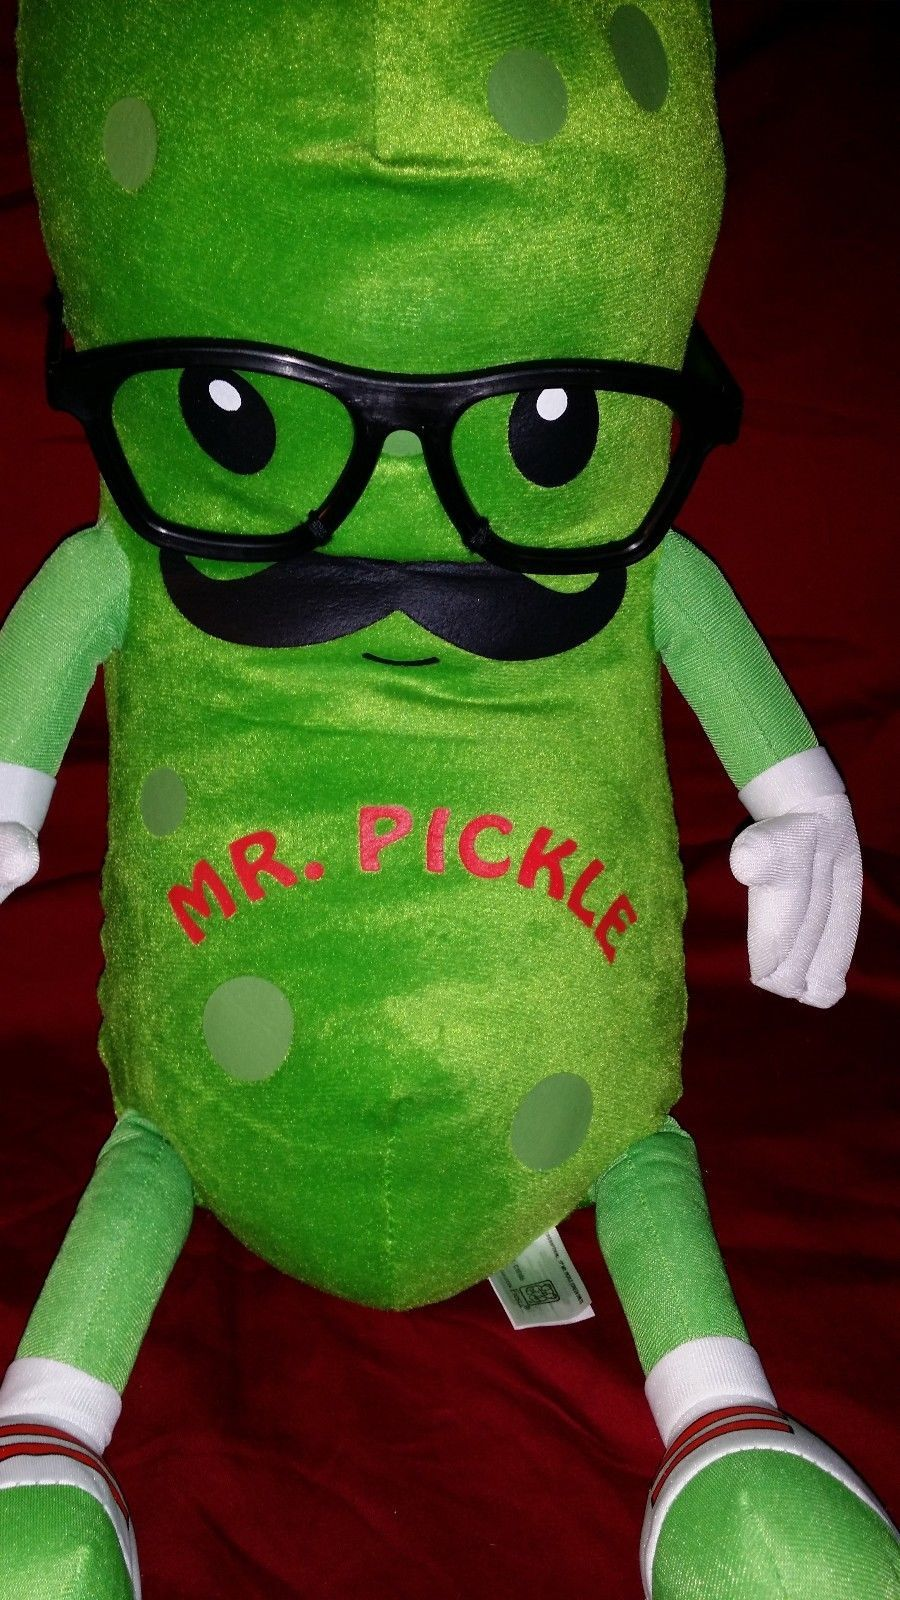 Large Fiesta 17 Quot Mr Pickle Green Only Stuffed Animal